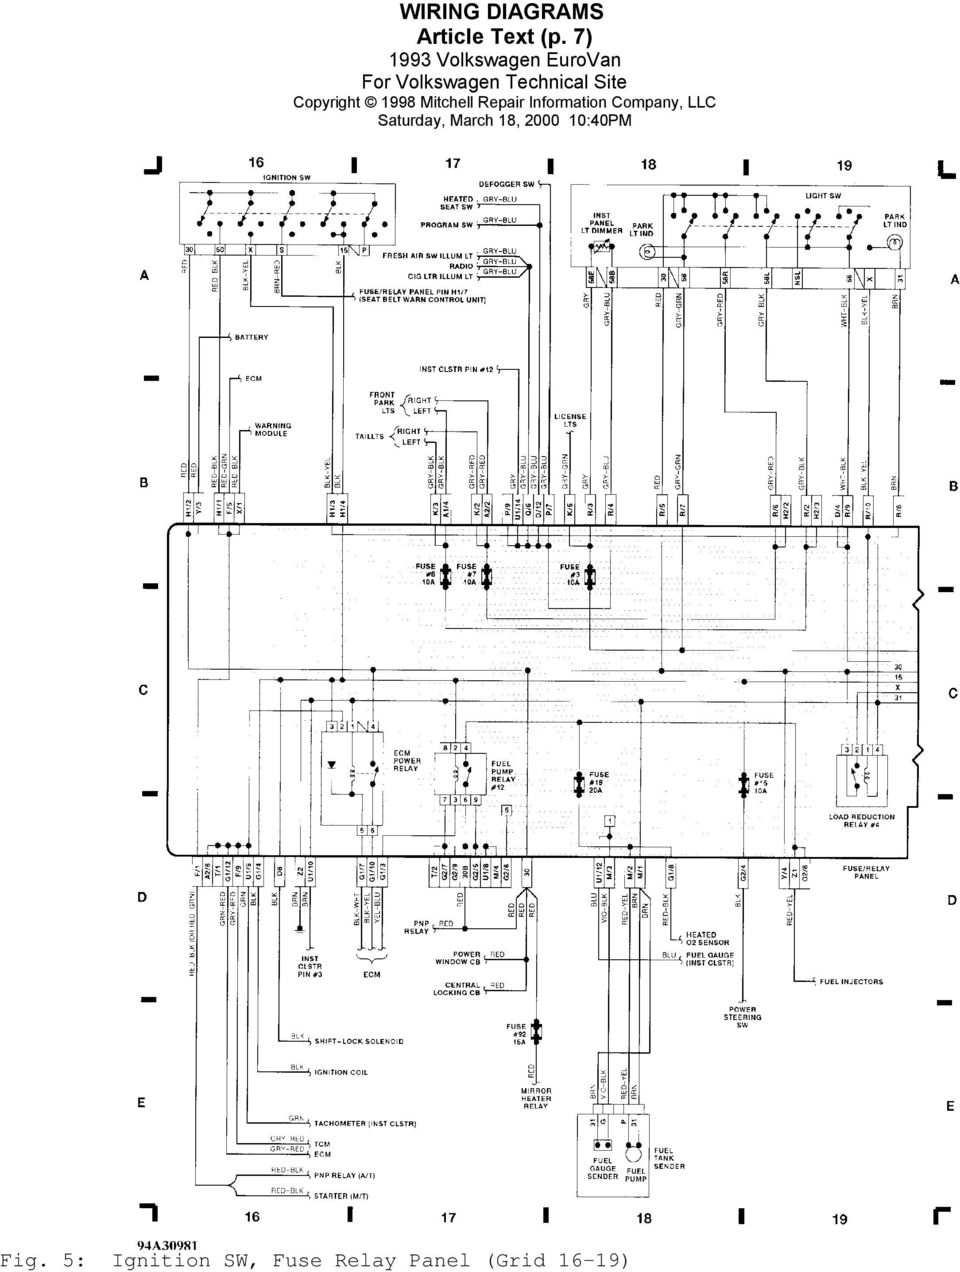 eurovan wiring diagram 1993 wiring diagrams volkswagen wiring diagrams ... 95 vw eurovan wiring diagram